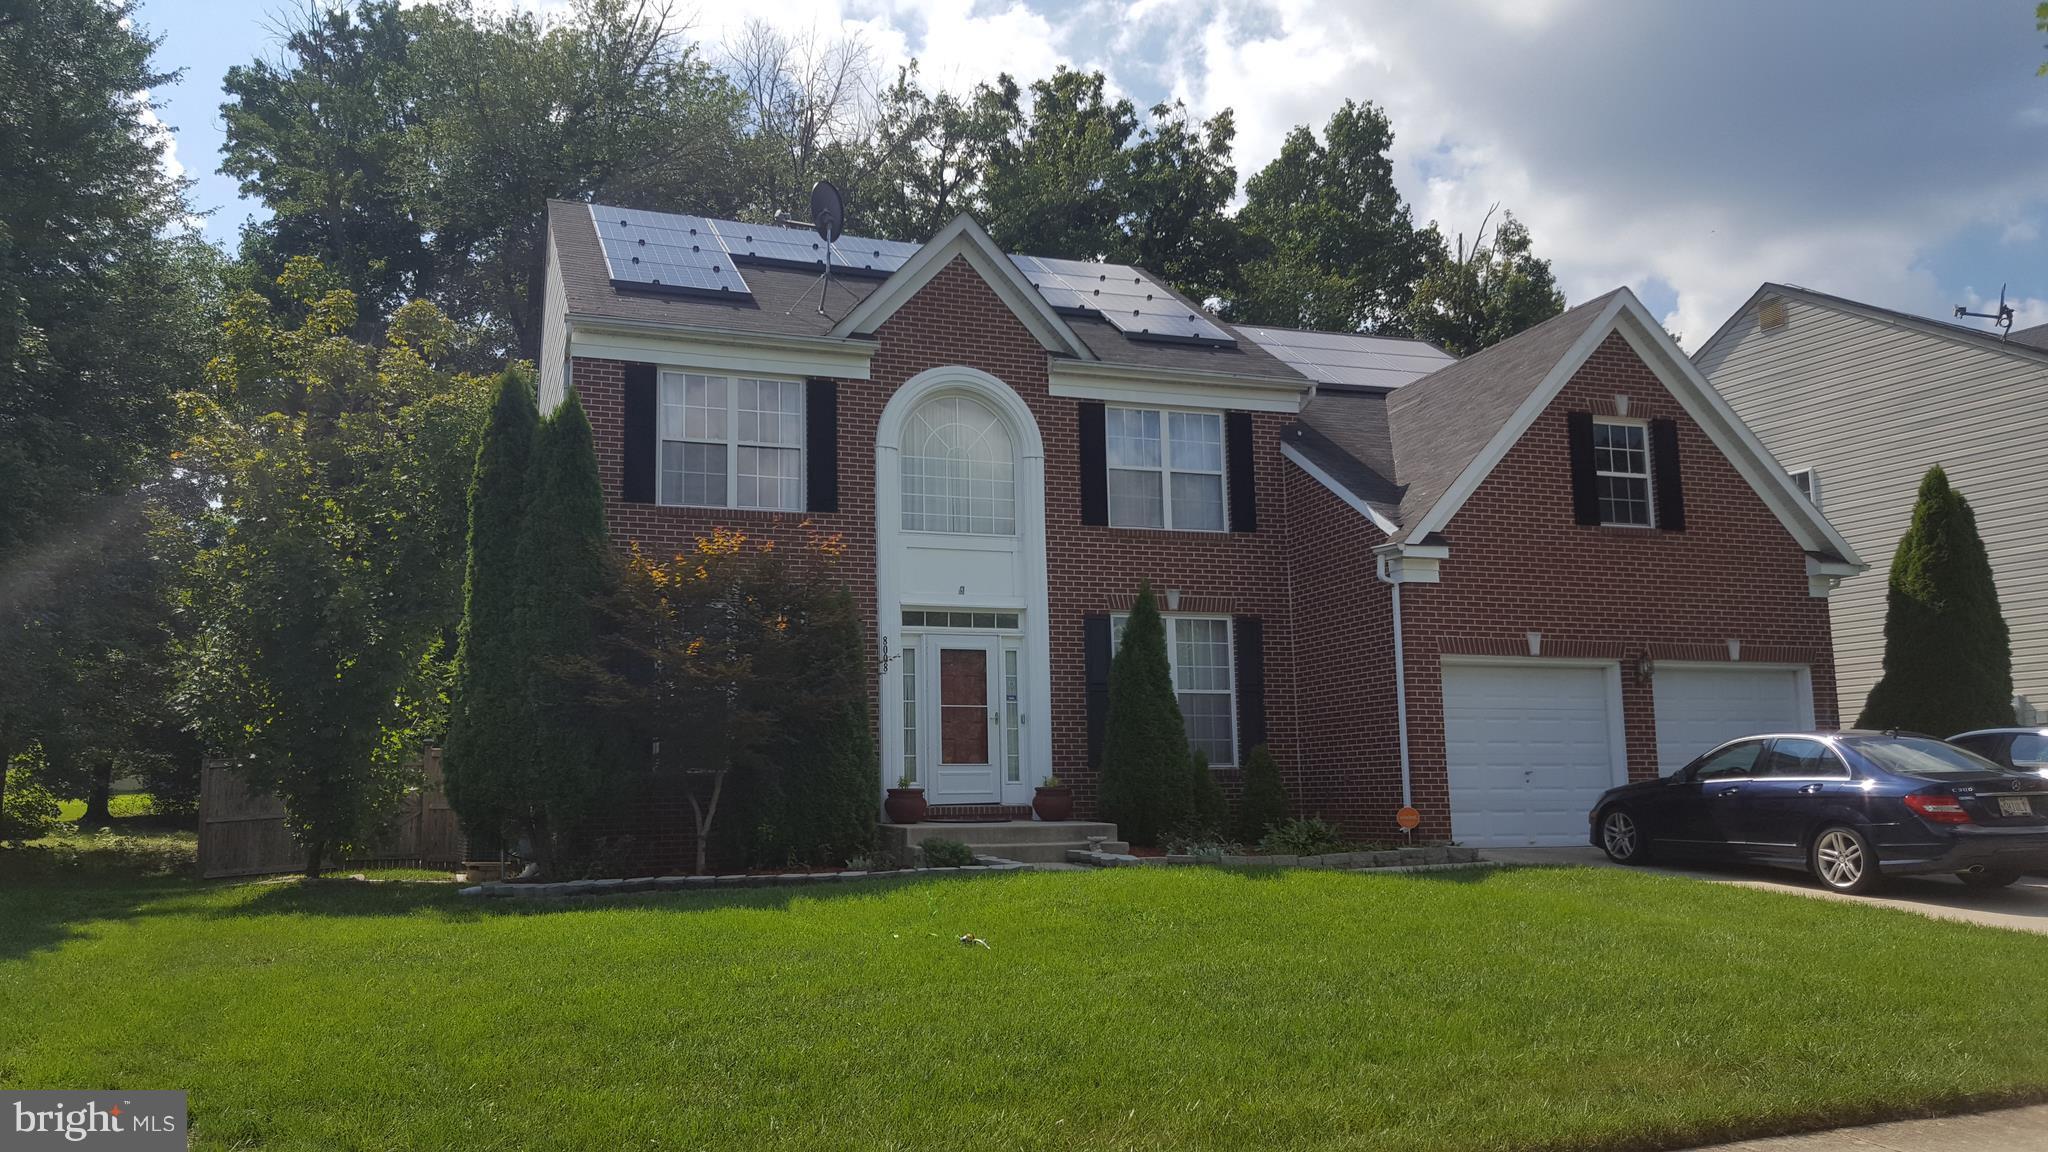 8008 ALLOWAY LANE, BELTSVILLE, MD 20705